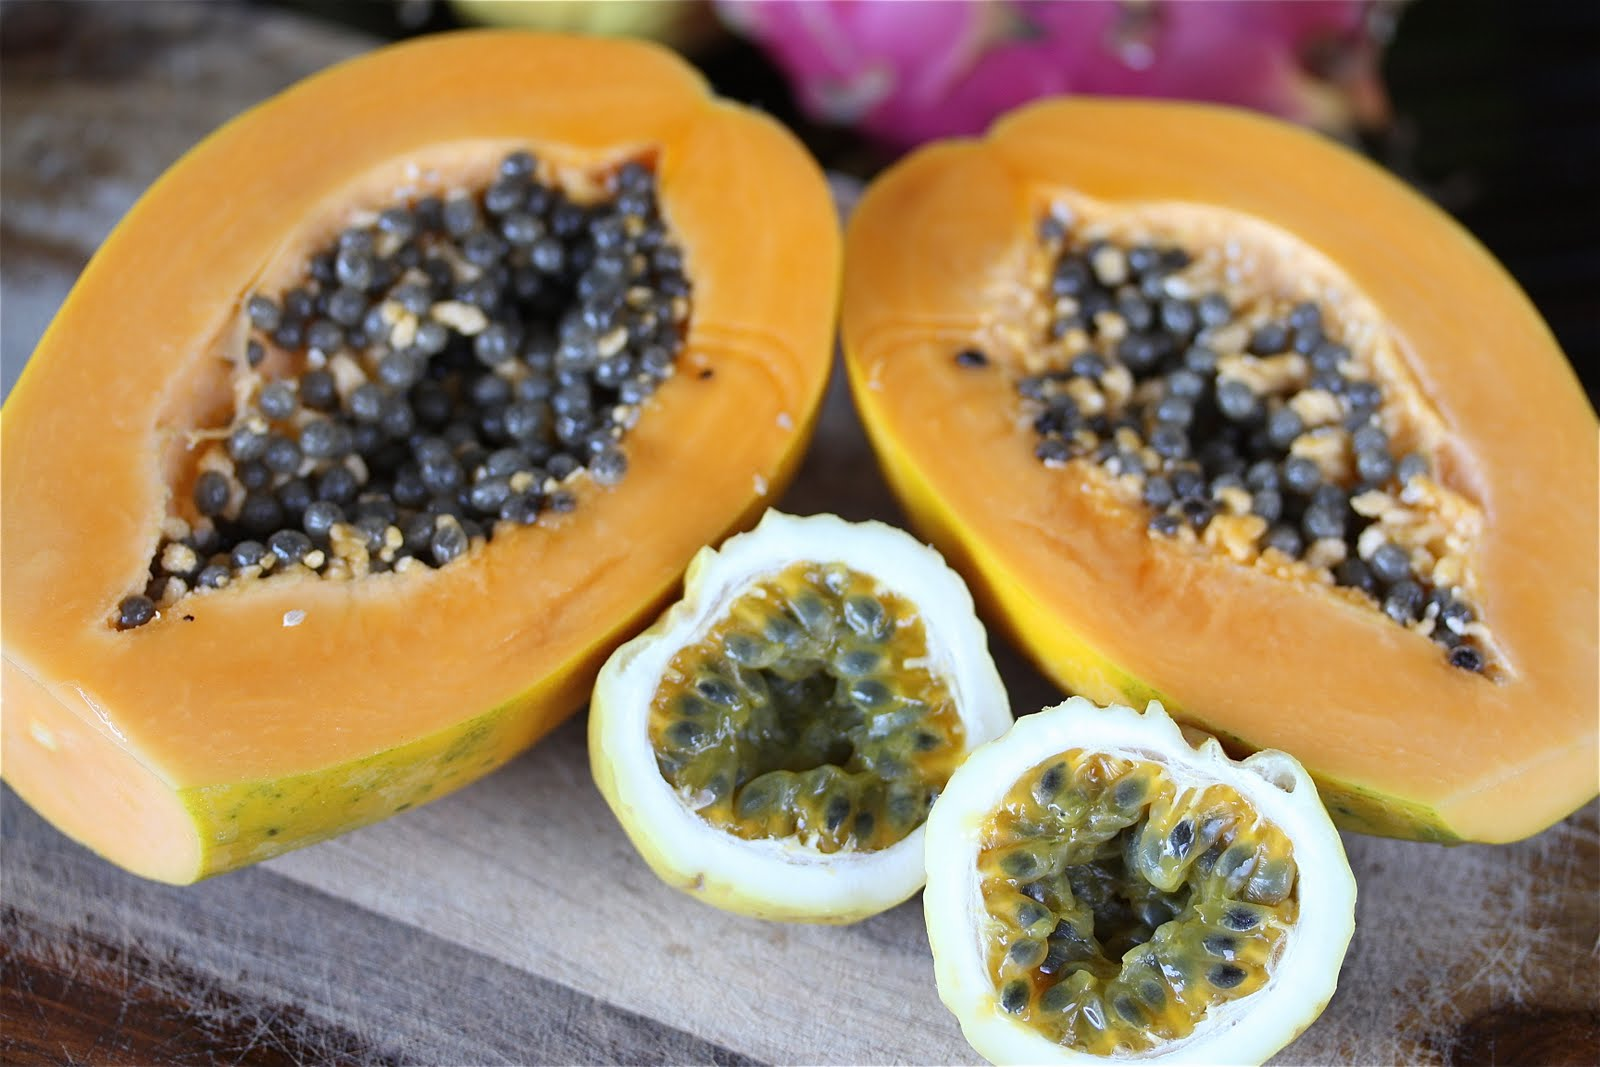 Simply Tropical Fruits - Papaya and Passion Fruit - Jeanette's